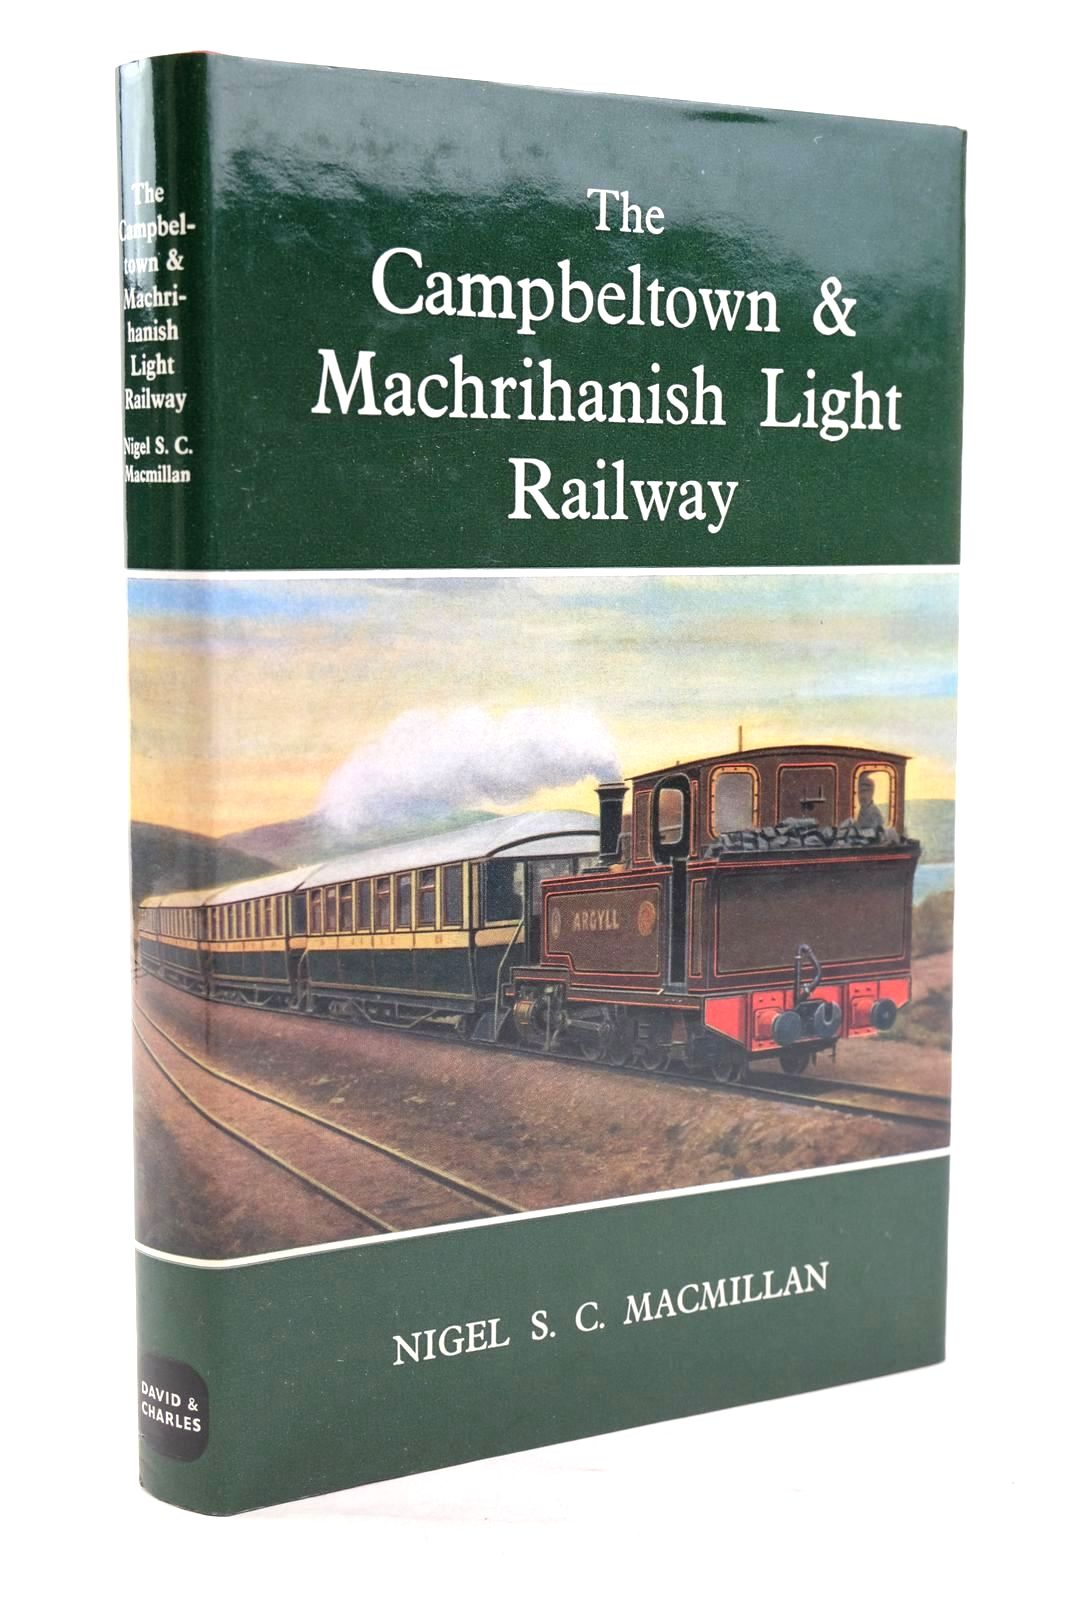 Photo of THE CAMPBELTOWN & MACHRIHANISH LIGHT RAILWAY written by MacMillan, Nigel S.C. illustrated by Cameron, Fraser published by David & Charles (STOCK CODE: 1319931)  for sale by Stella & Rose's Books